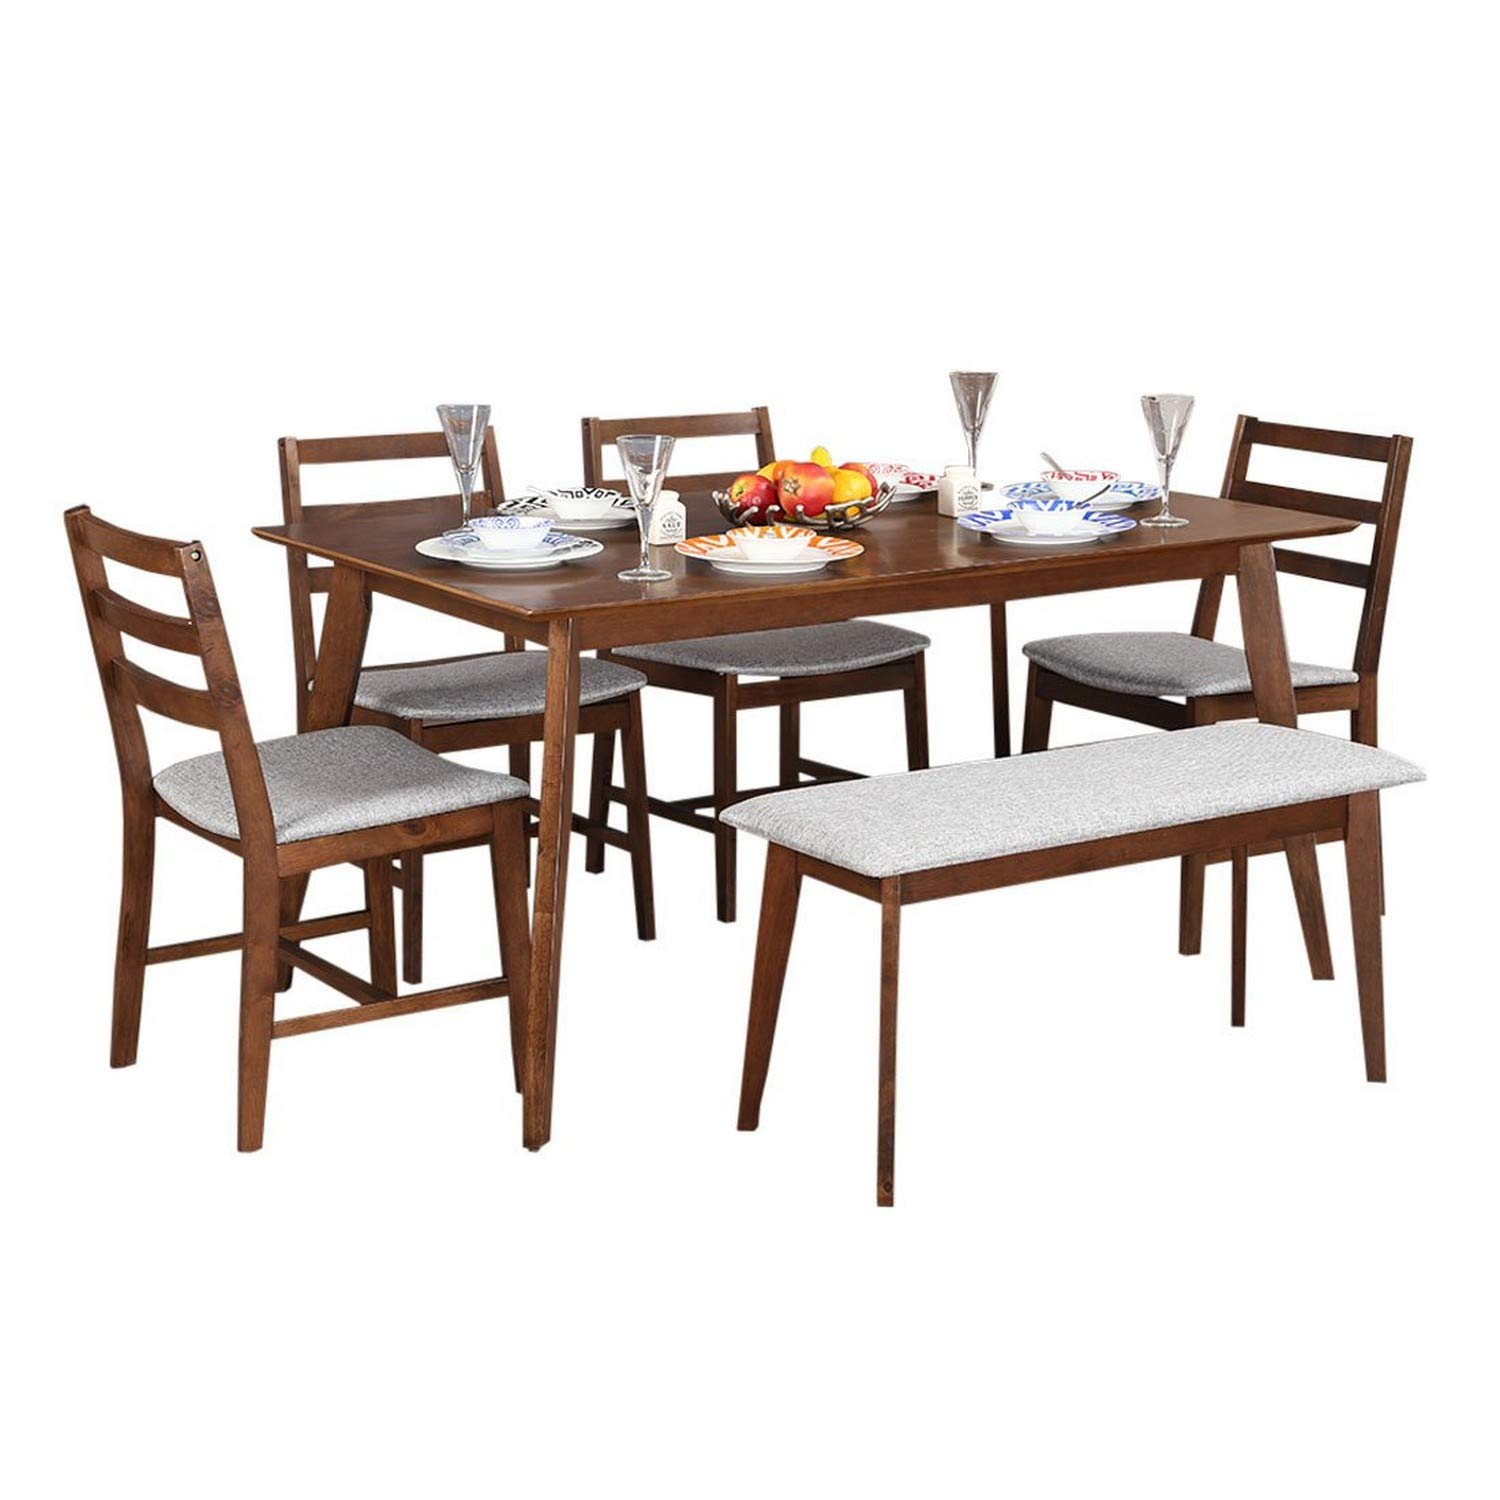 HomeTown Allen 6 Seater Dining Set with Bench